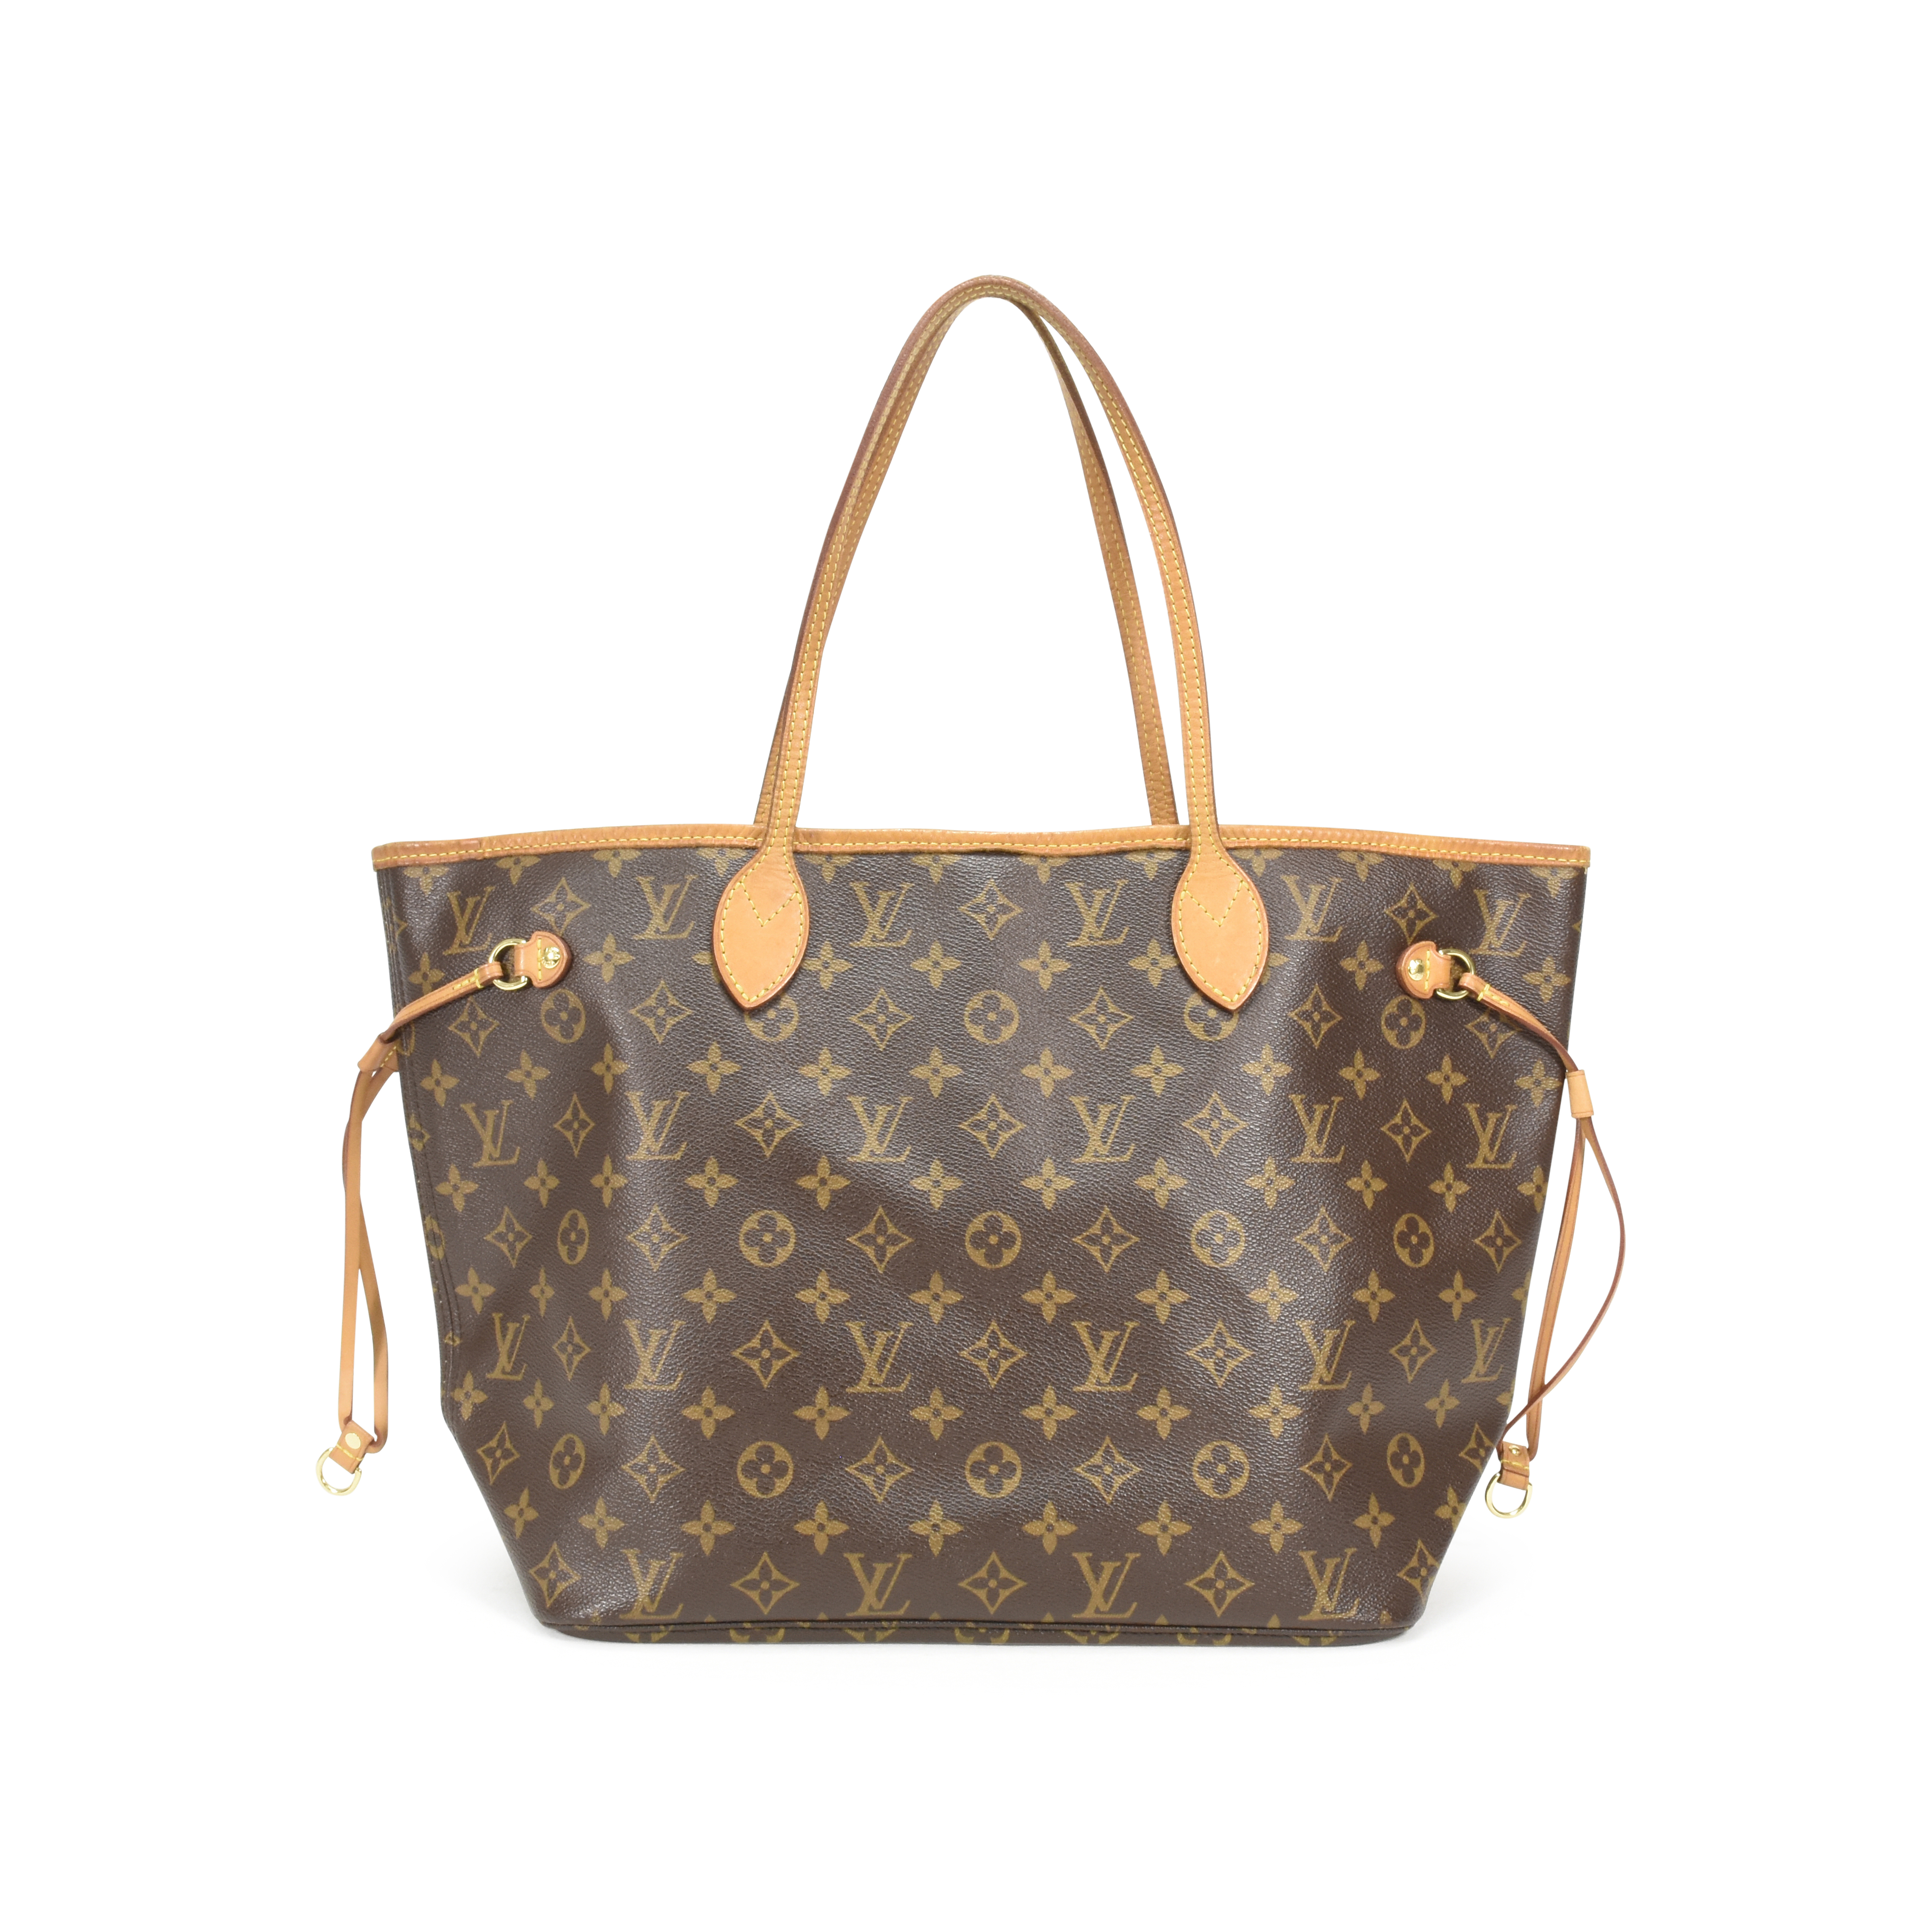 Authentic Pre Owned Louis Vuitton Neverfull Mm Pss 361 00021 The Fifth Collection